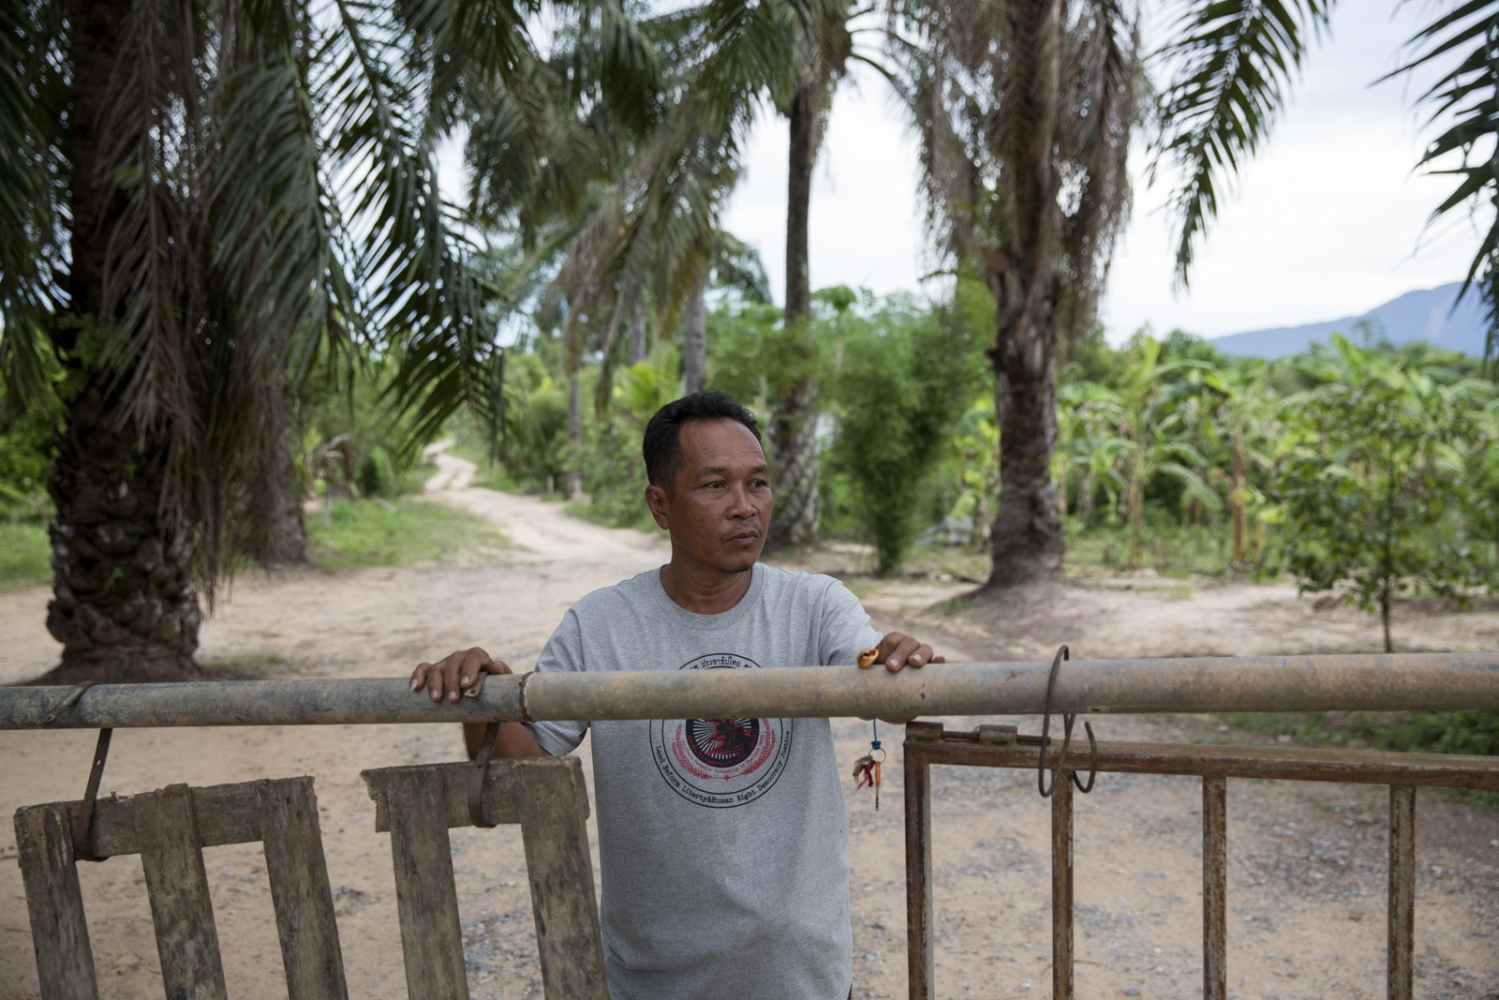 Tawat Ruangsi, 48, stands at the main entrance and security post to Klong Sai Pattana village after having just closed the gate at 6pm. The village tries to limit the number of vehicles entering and leaving during the night and re-opens at 6am. In total the village has 4 security posts which are manned 24 hours a day by the villagers who take it in turn in small groups of 3-4 people. May 2016.